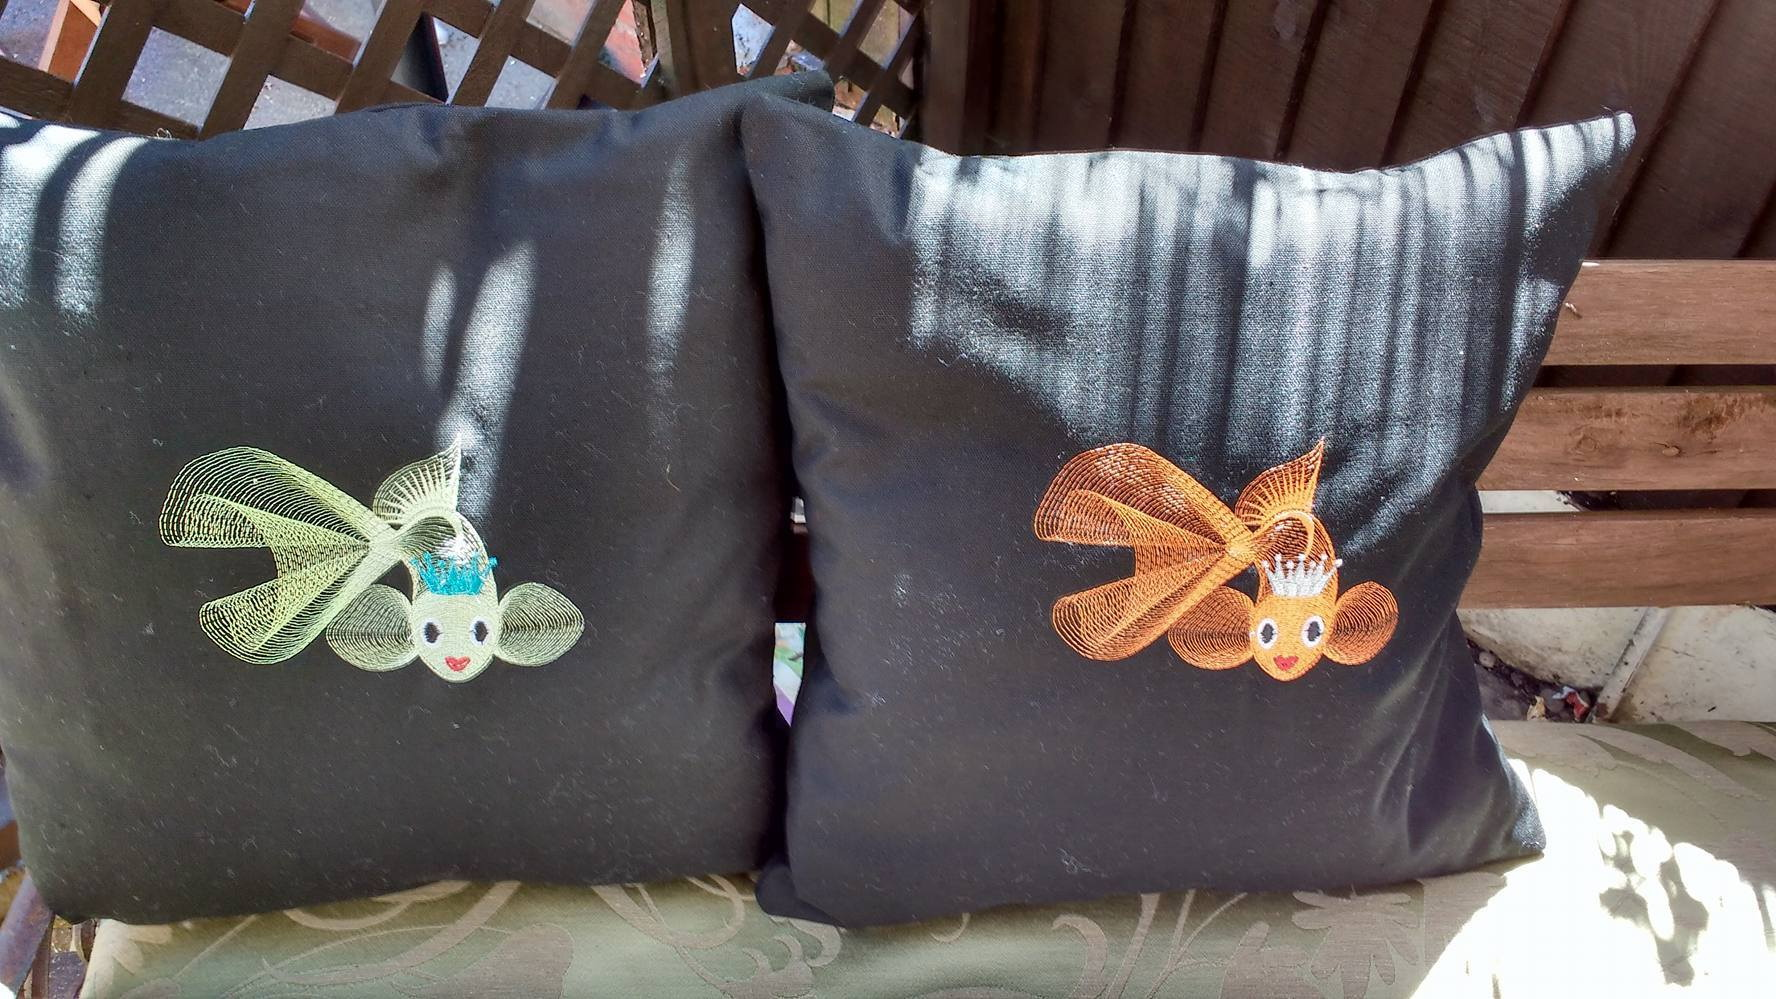 Gold fish embroidered on black pillowcases